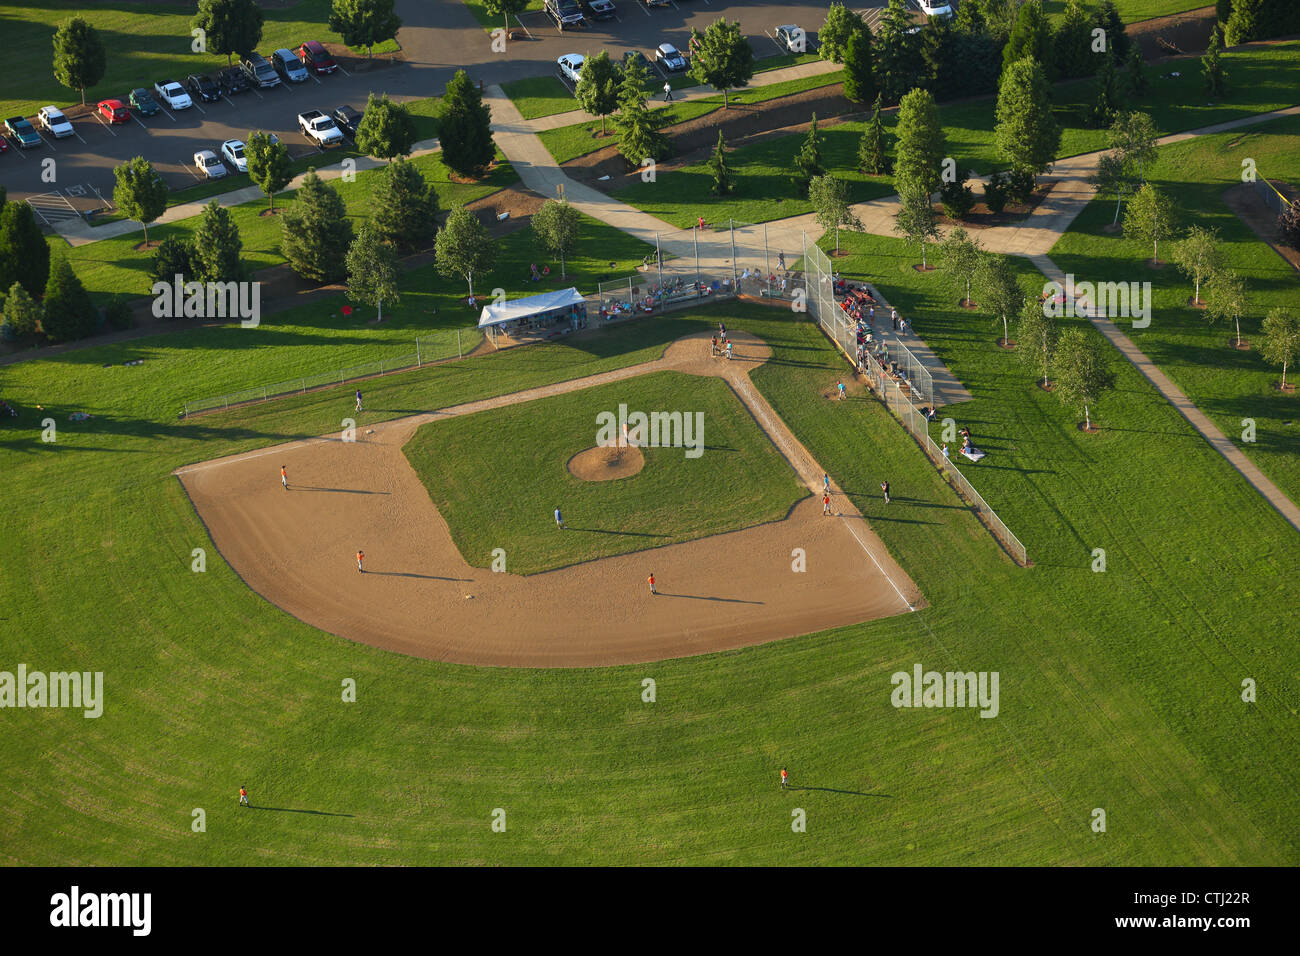 Little league baseball field, aerial view - Stock Image